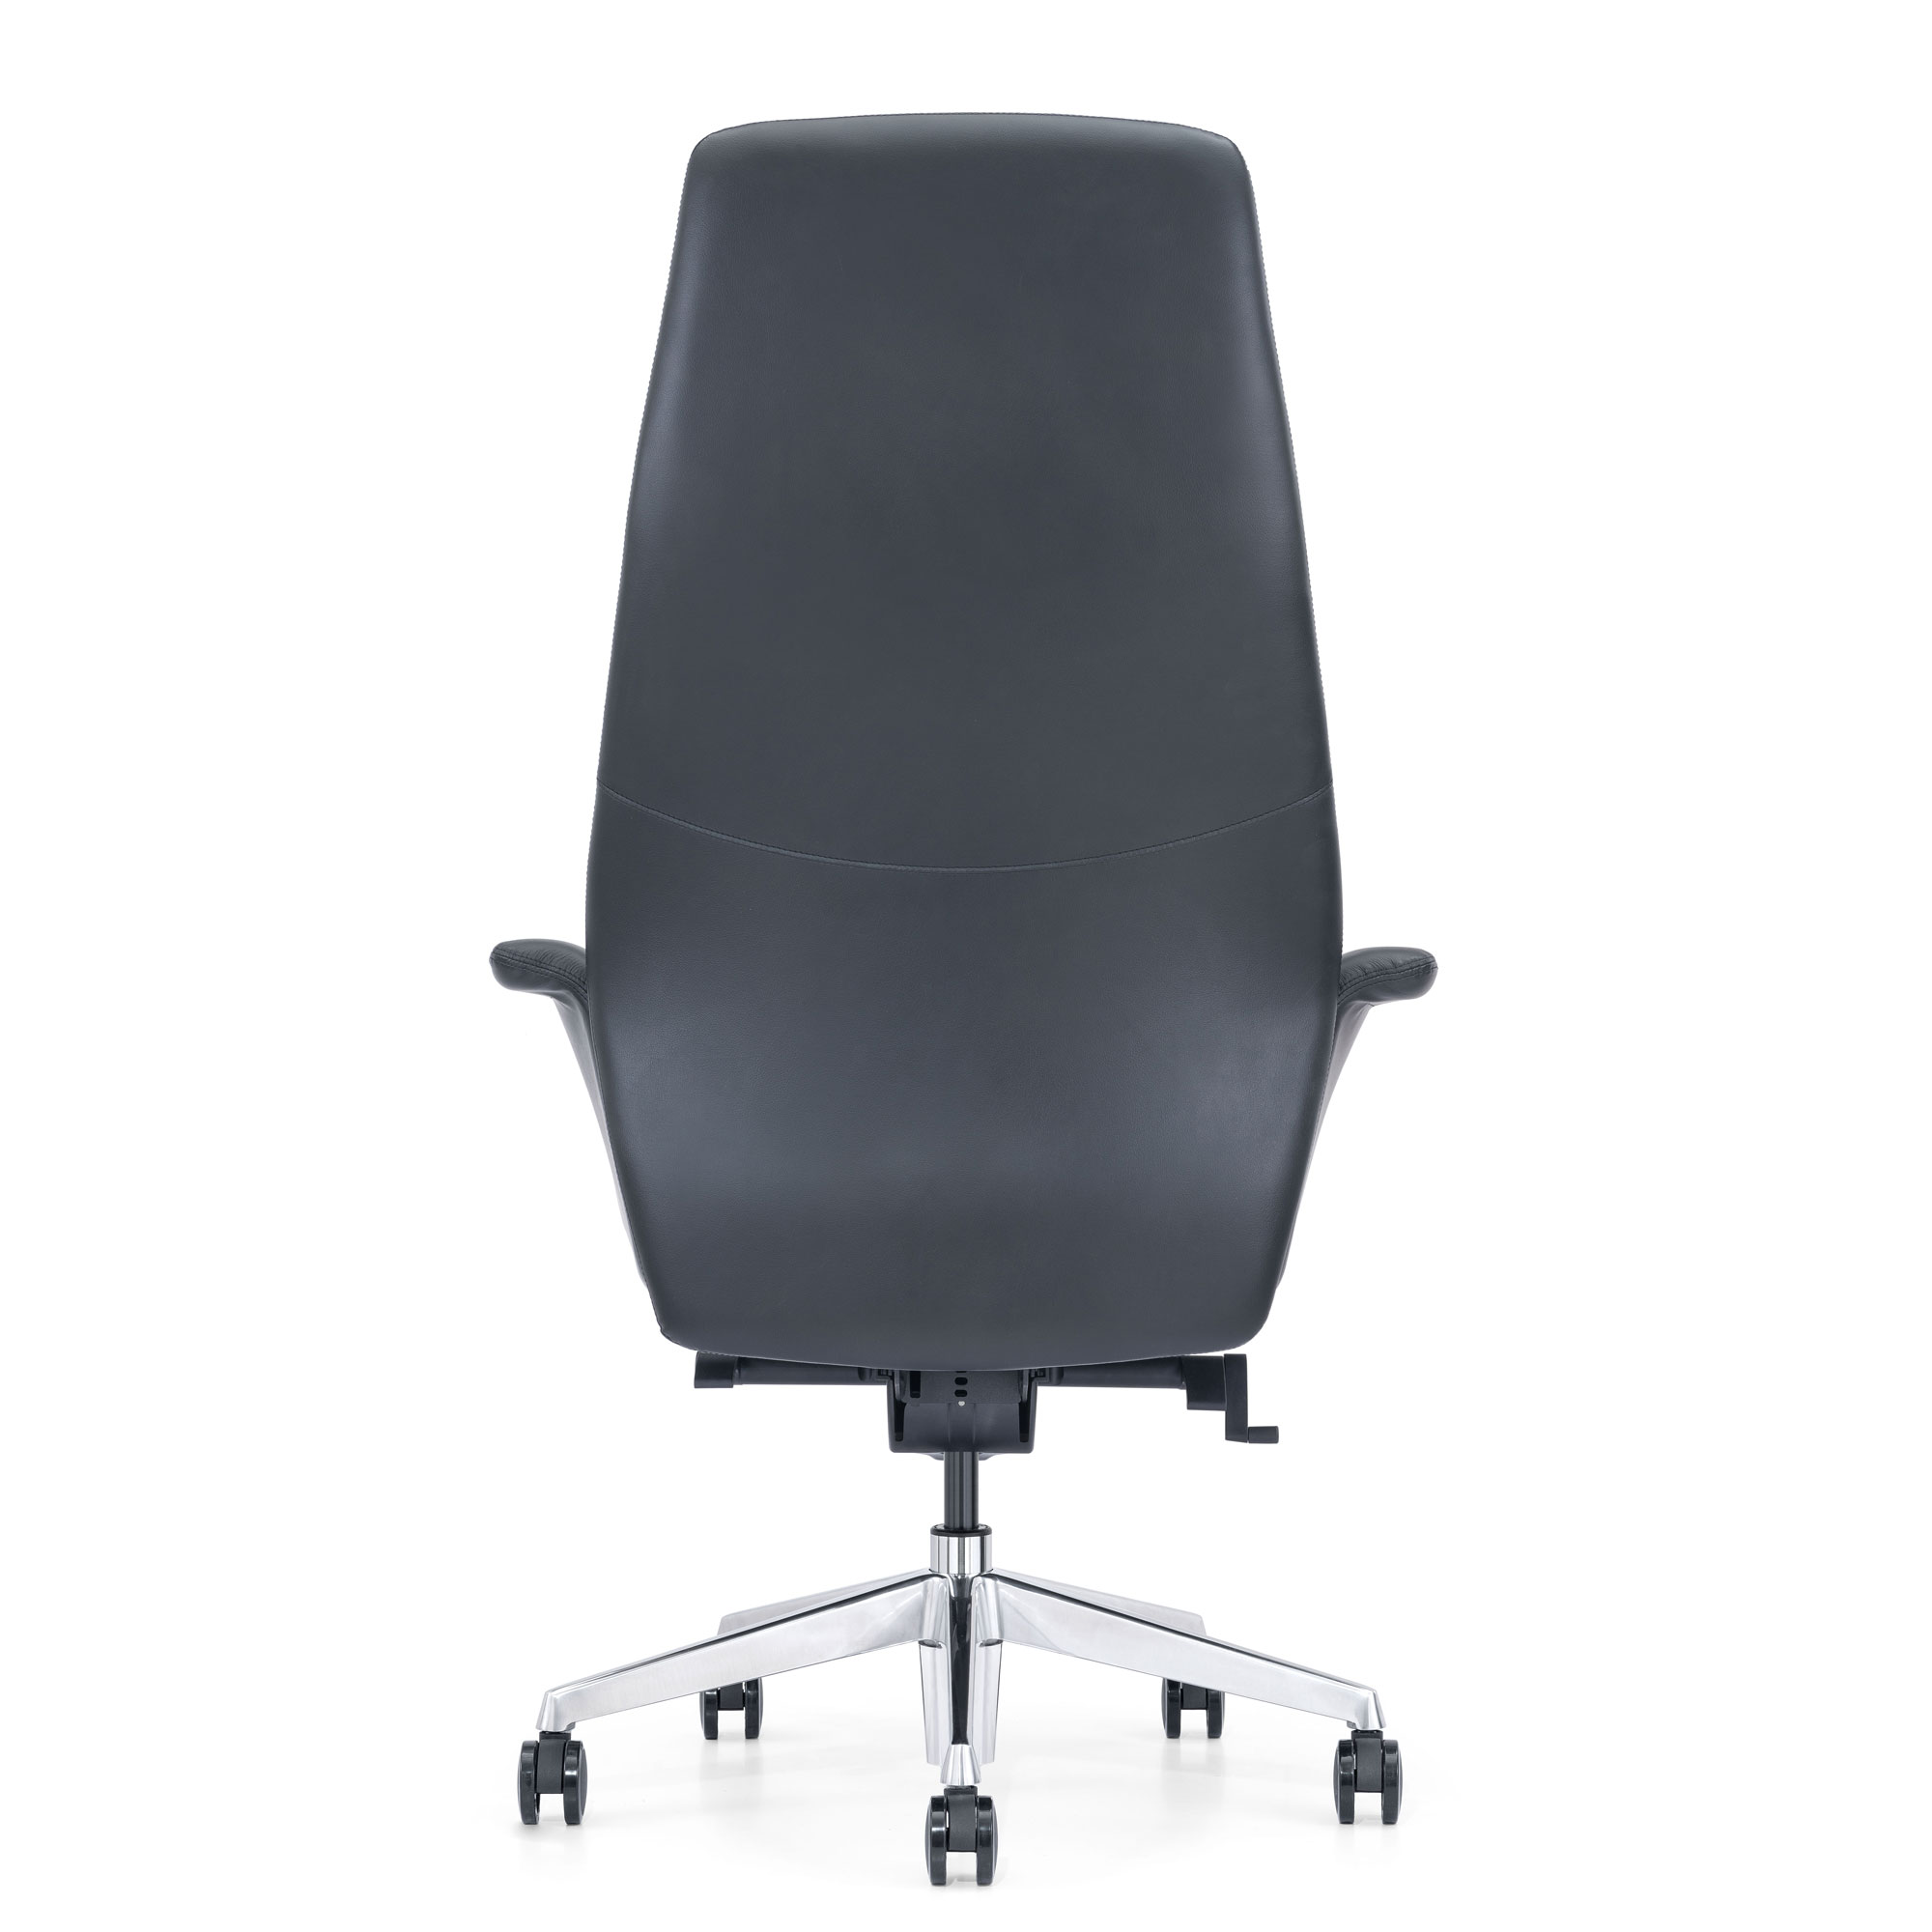 Black Leather Office Chair, Back View